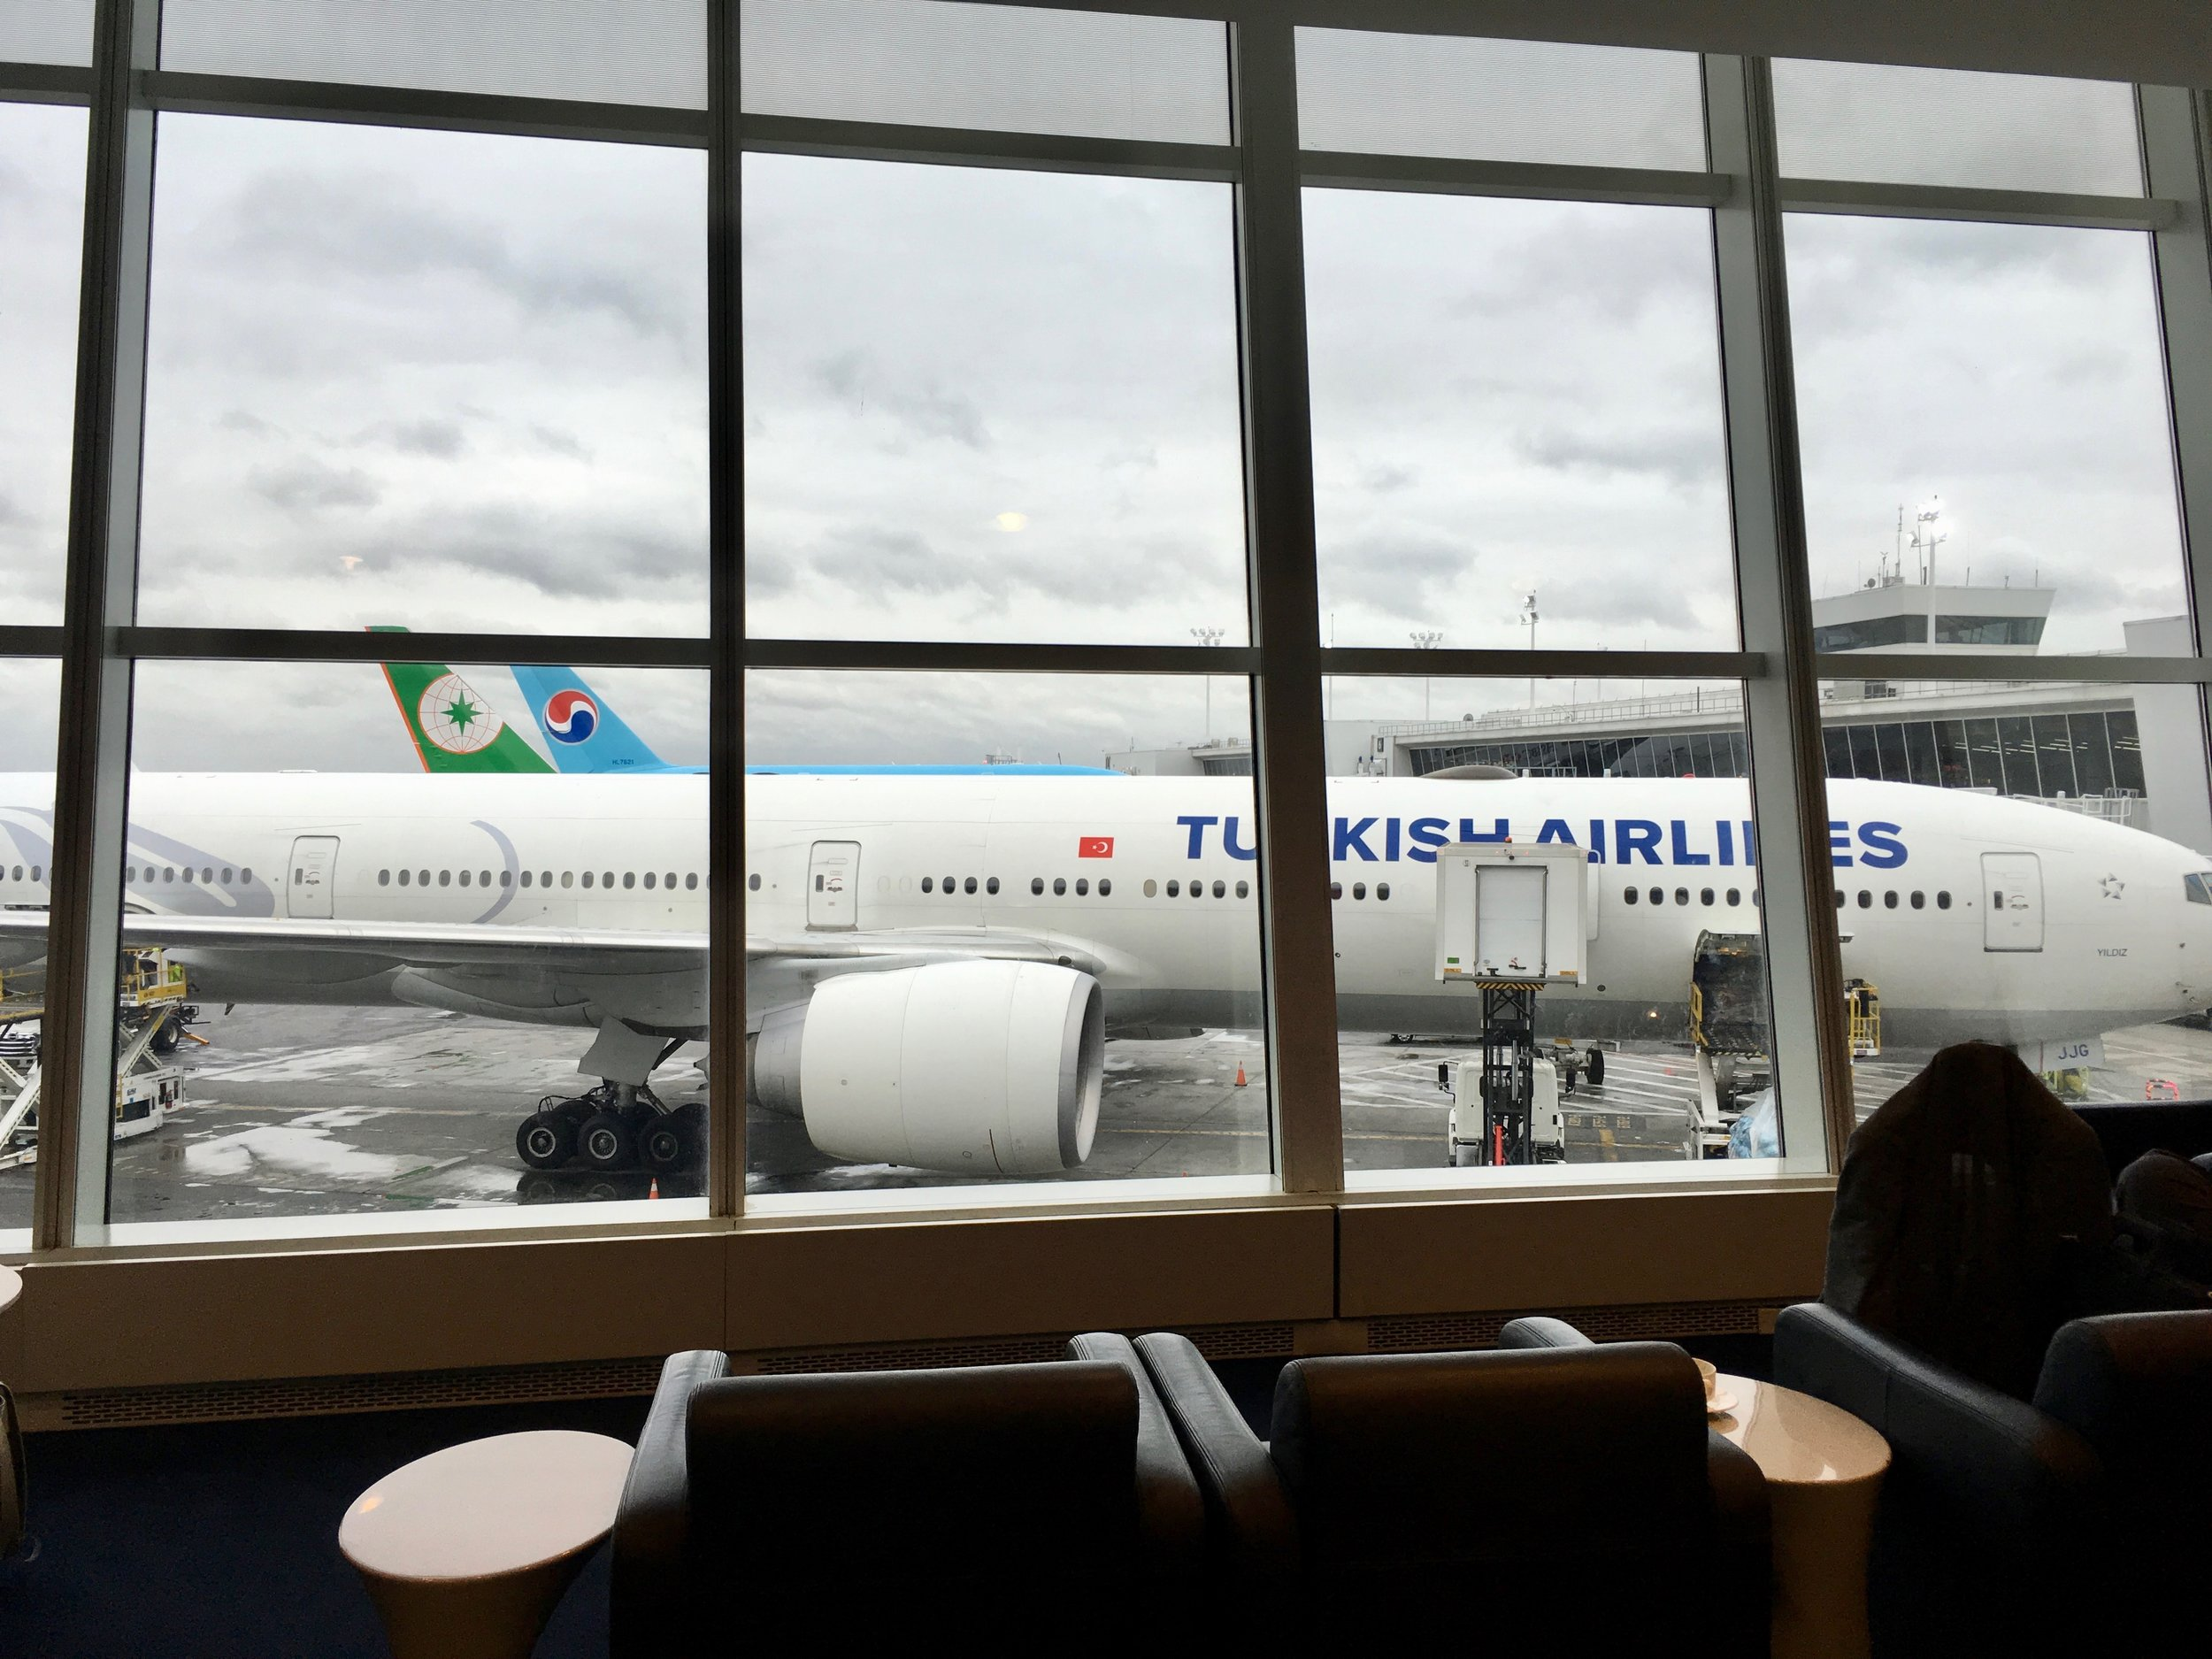 Our aircraft at the gate